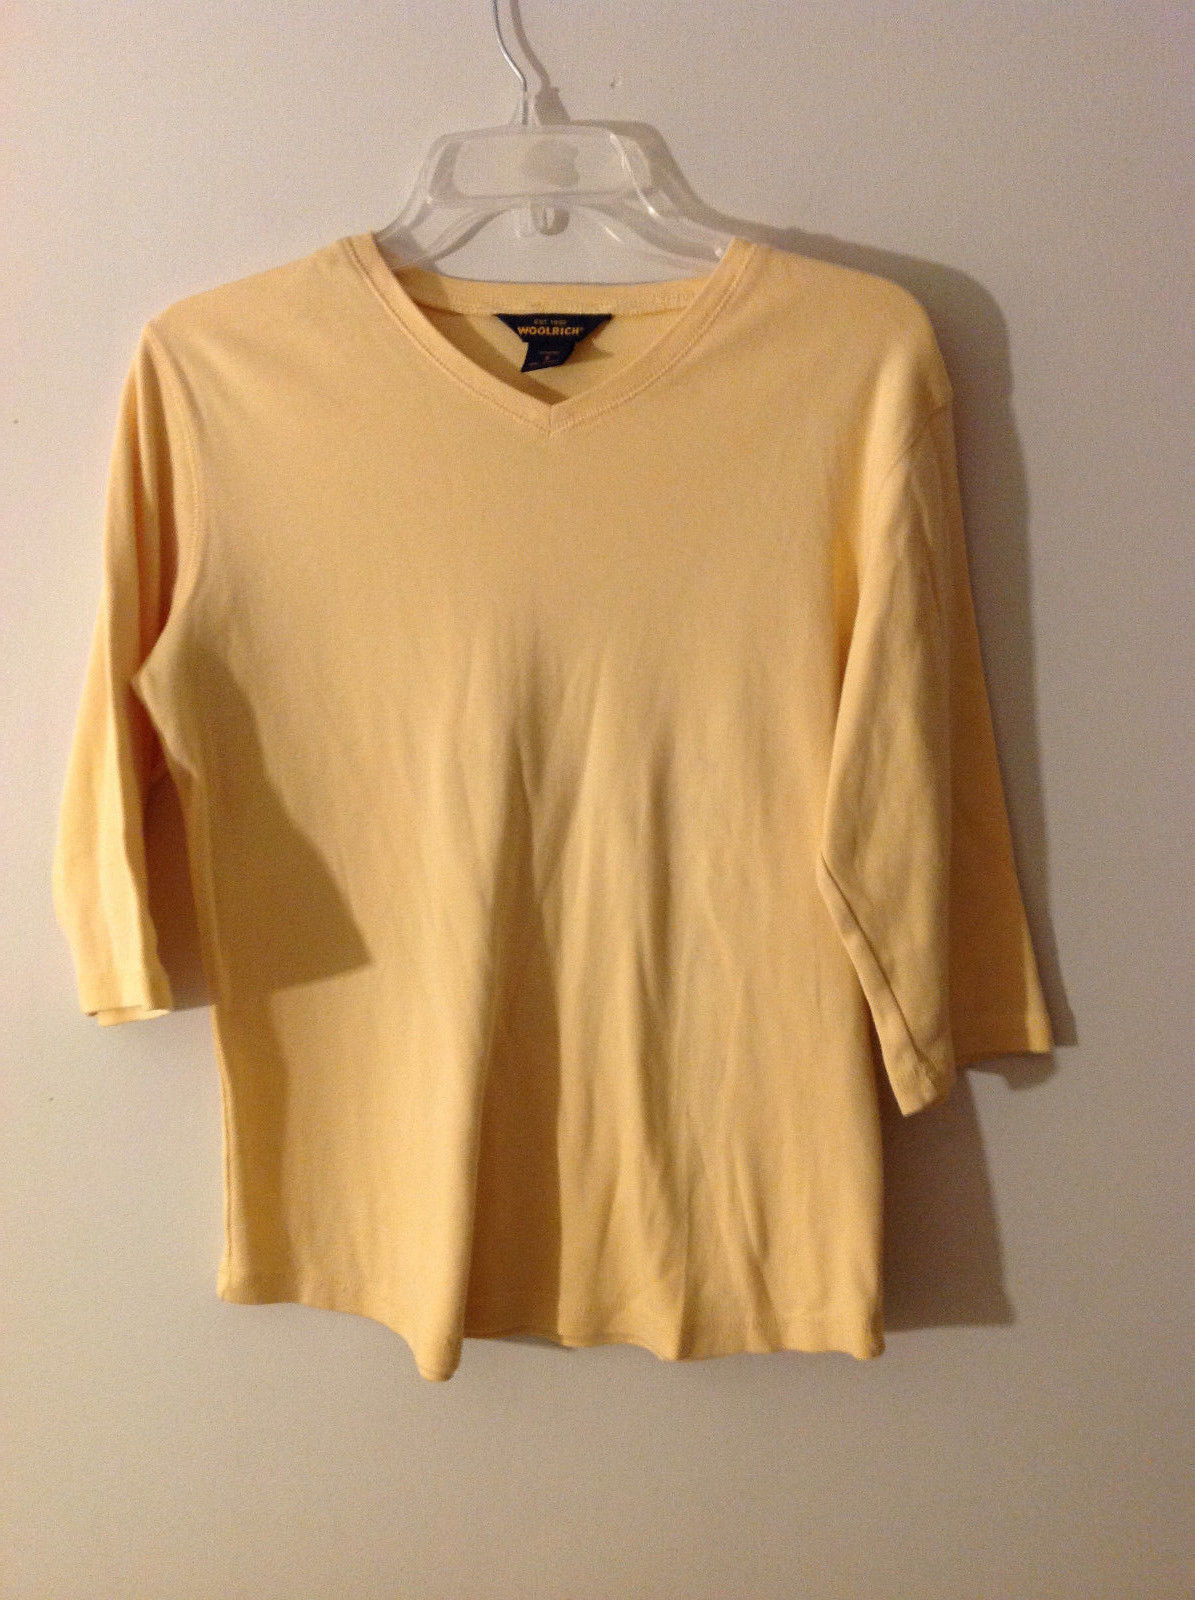 "Woolrich Womens Size S Jersey Knit ""T-Shirt"" Tee Top Yellow V Neck ""3/4"" Sleeves"